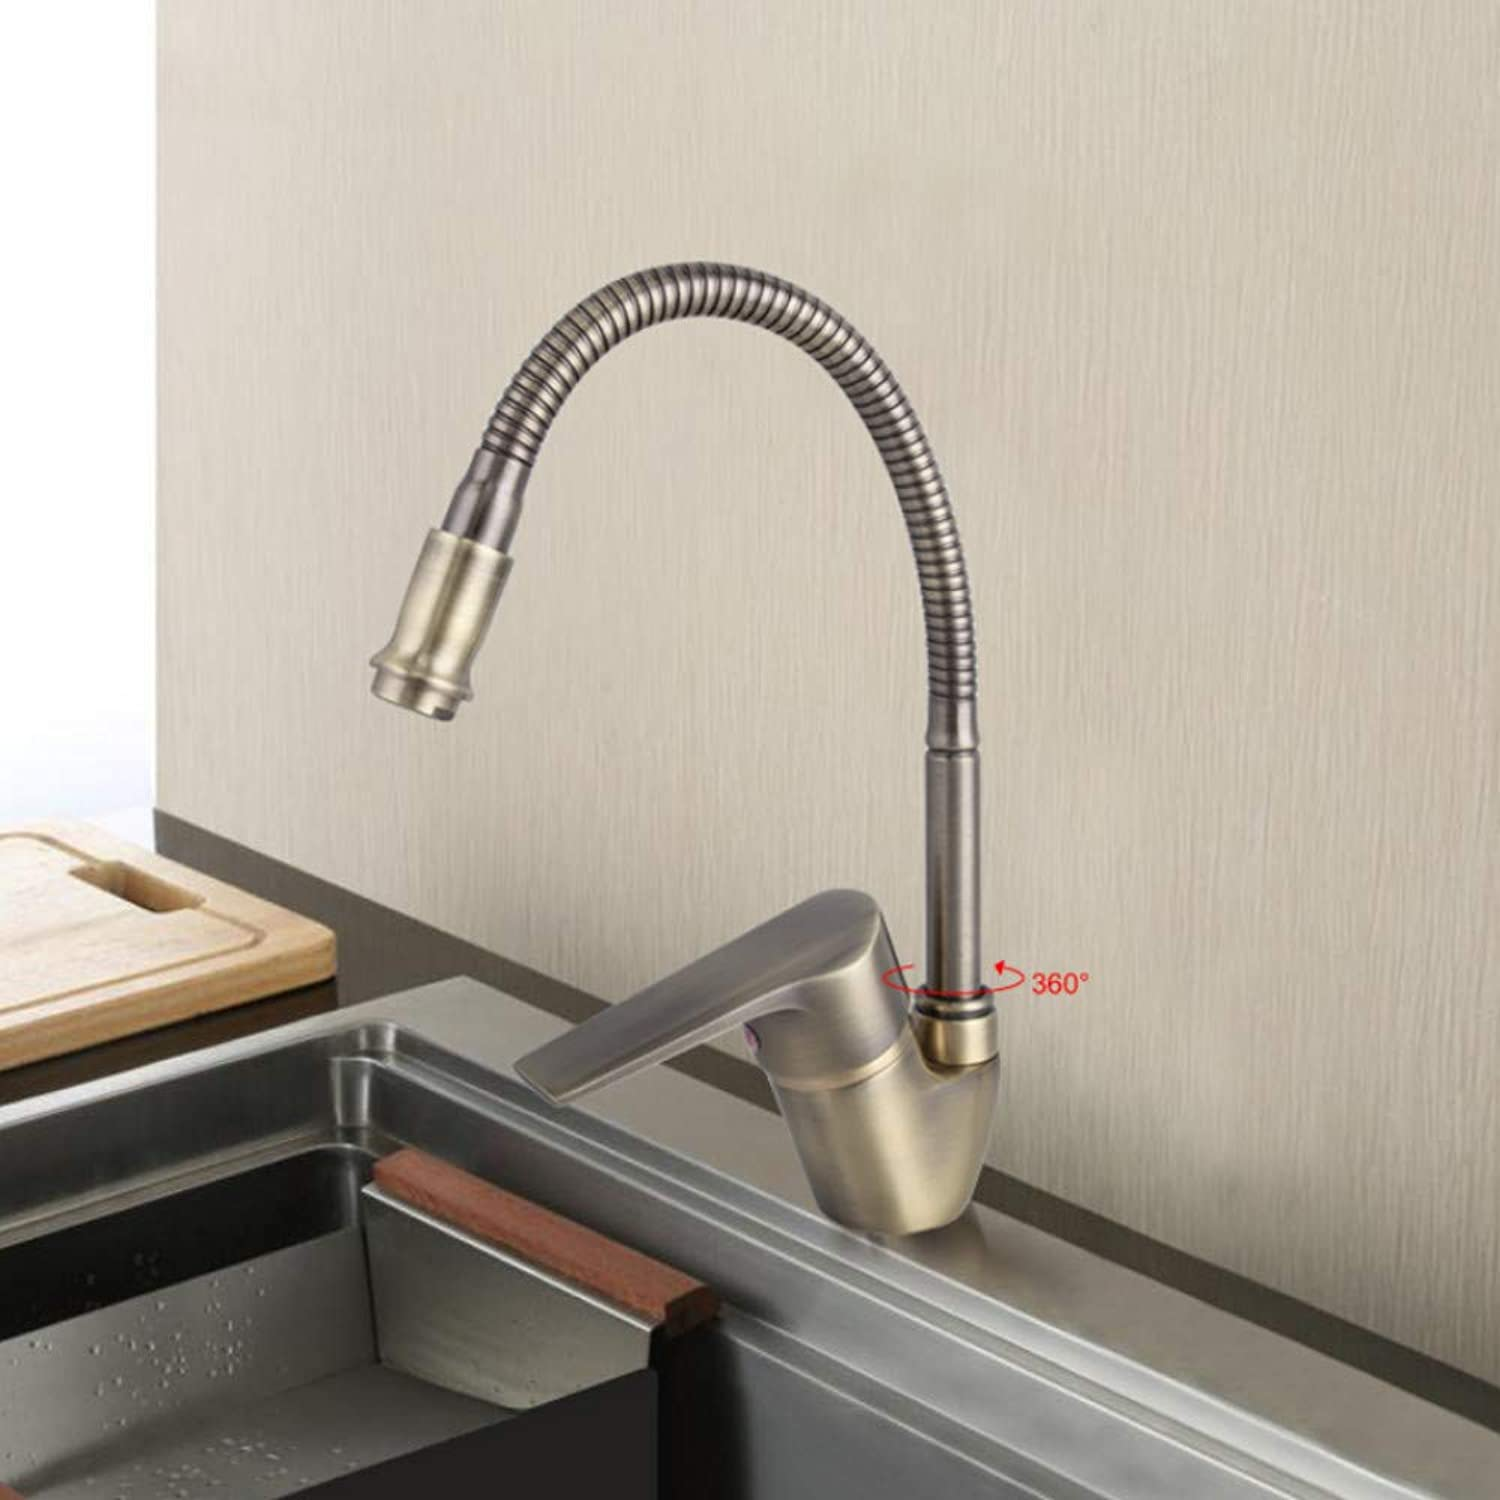 Ayhuir Antique Style Bronze Kitchen Faucet Cold and Hot Water Mixer Tap Flexible Hose 360 Degree redation